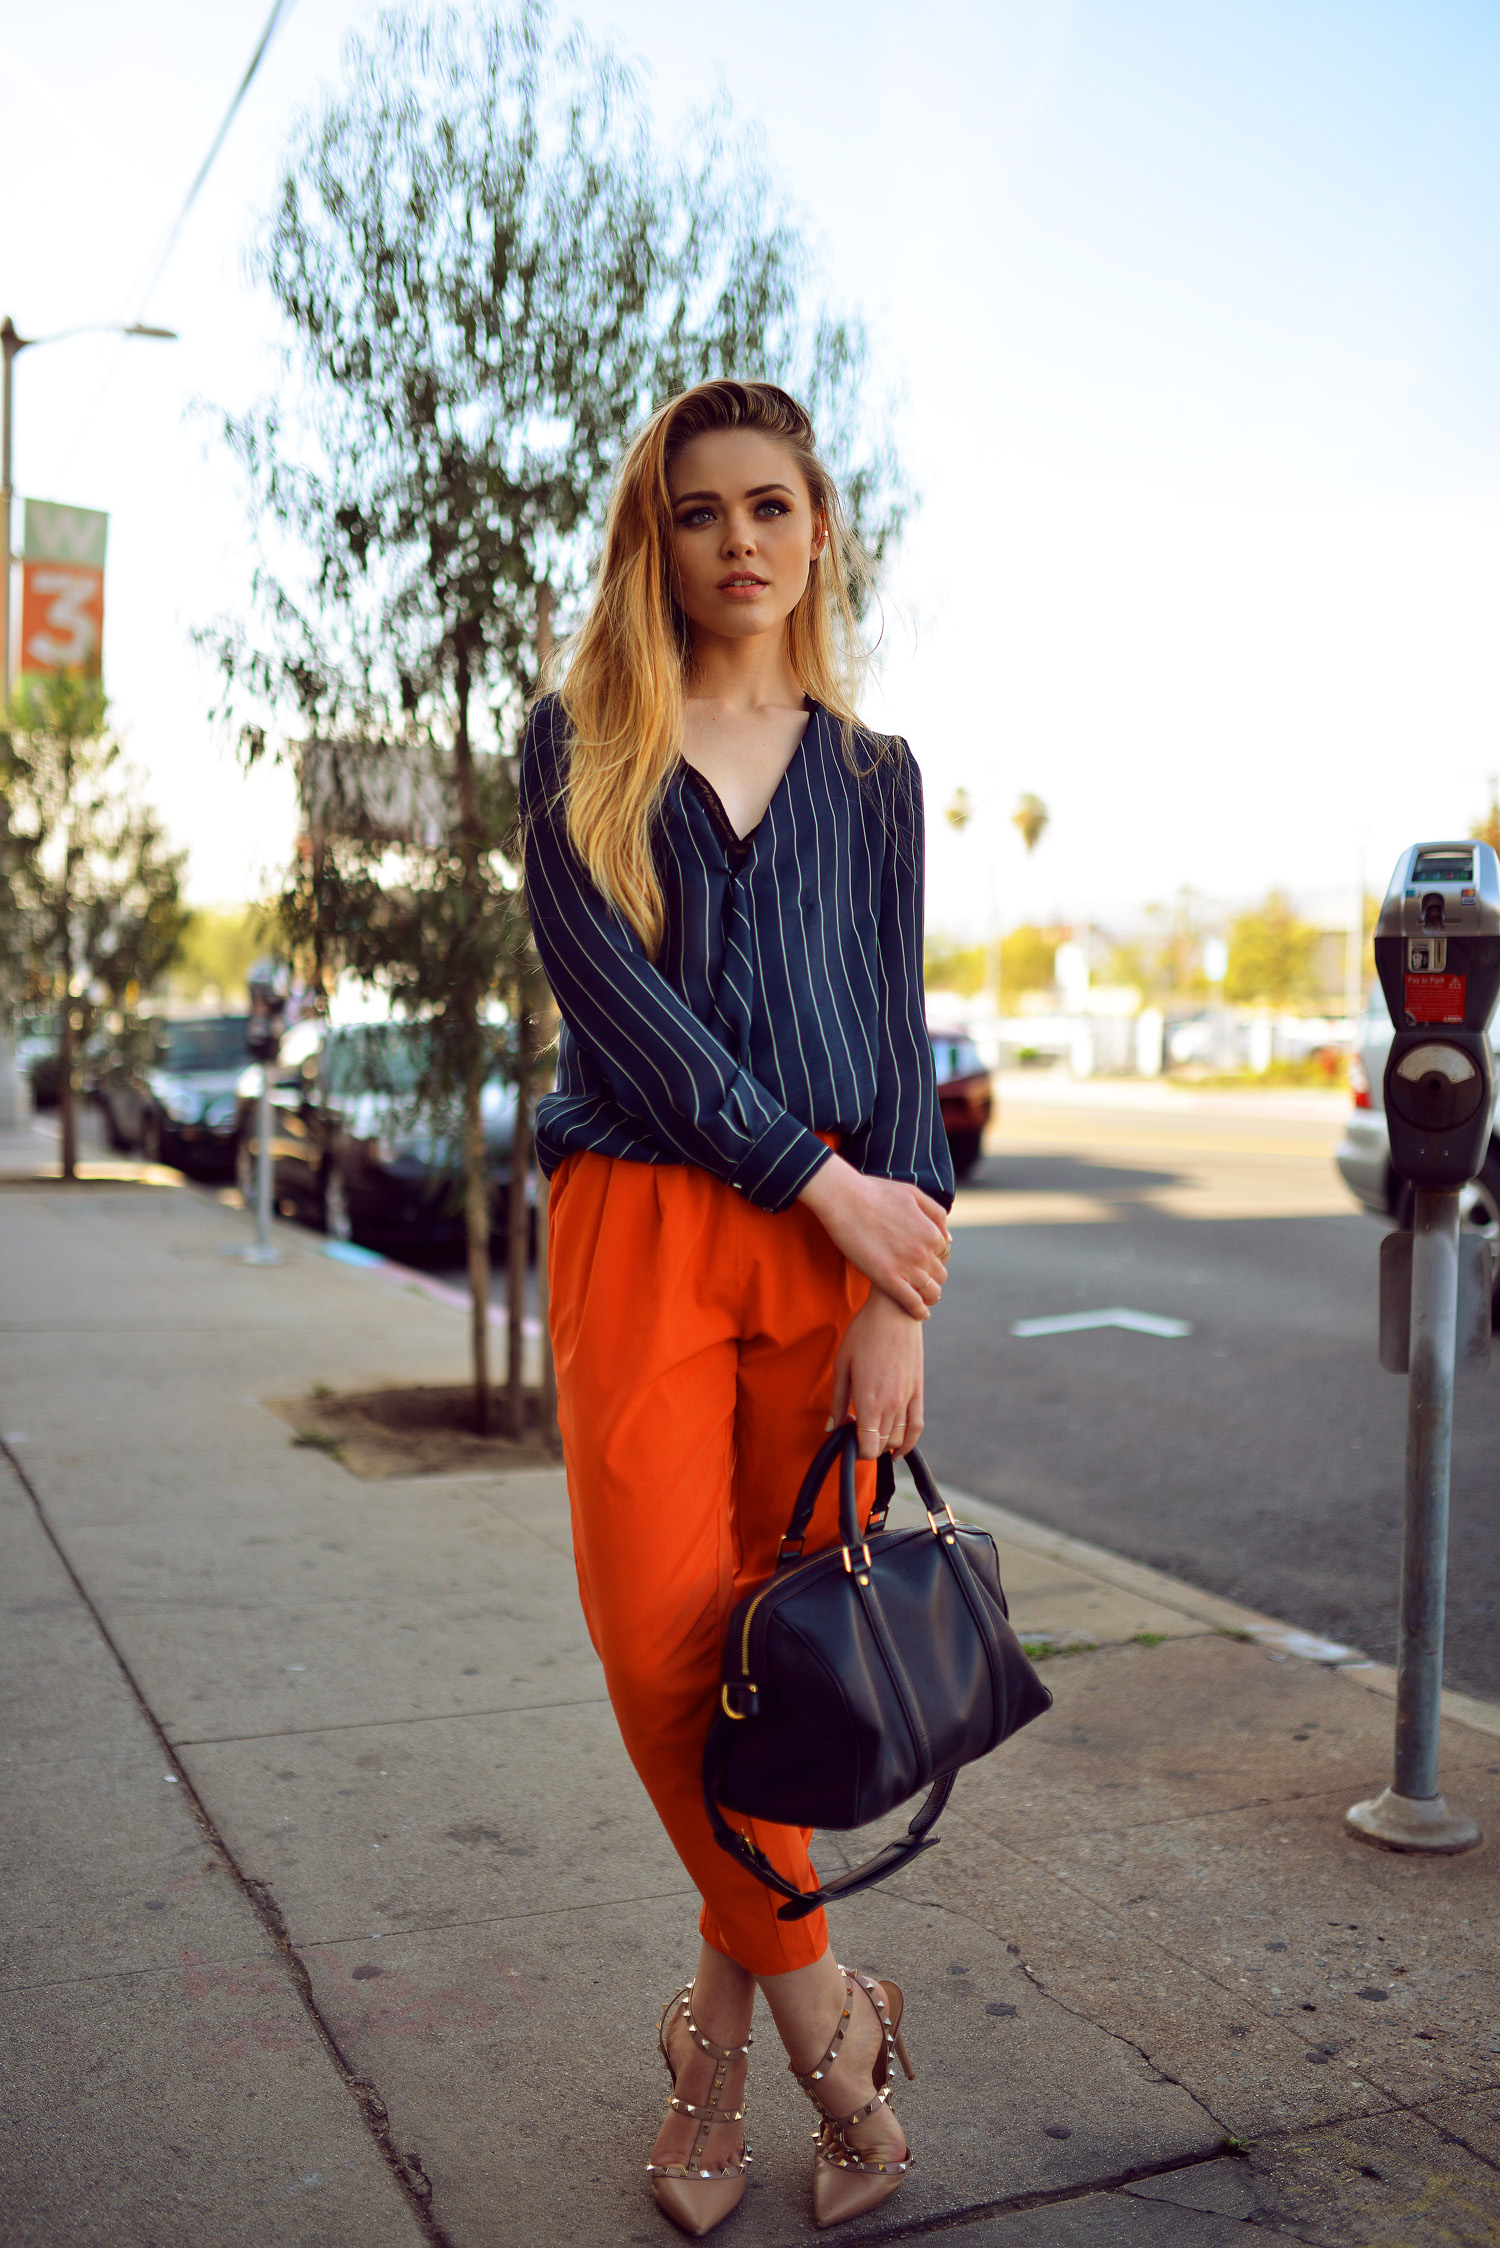 Kristina Bazan  a blogger with a great sense of style  fashionsycom